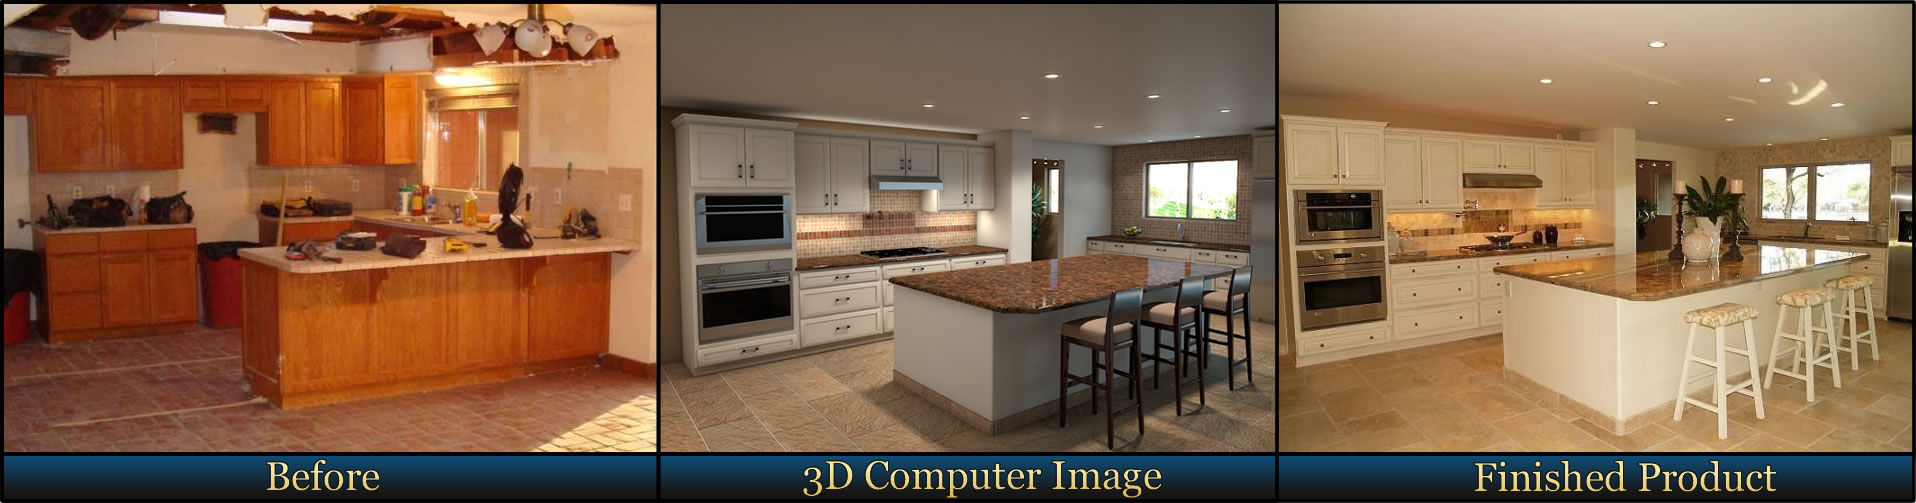 Tucson Kitchen Remodel - Before, Virtual 3d Render and After Completion